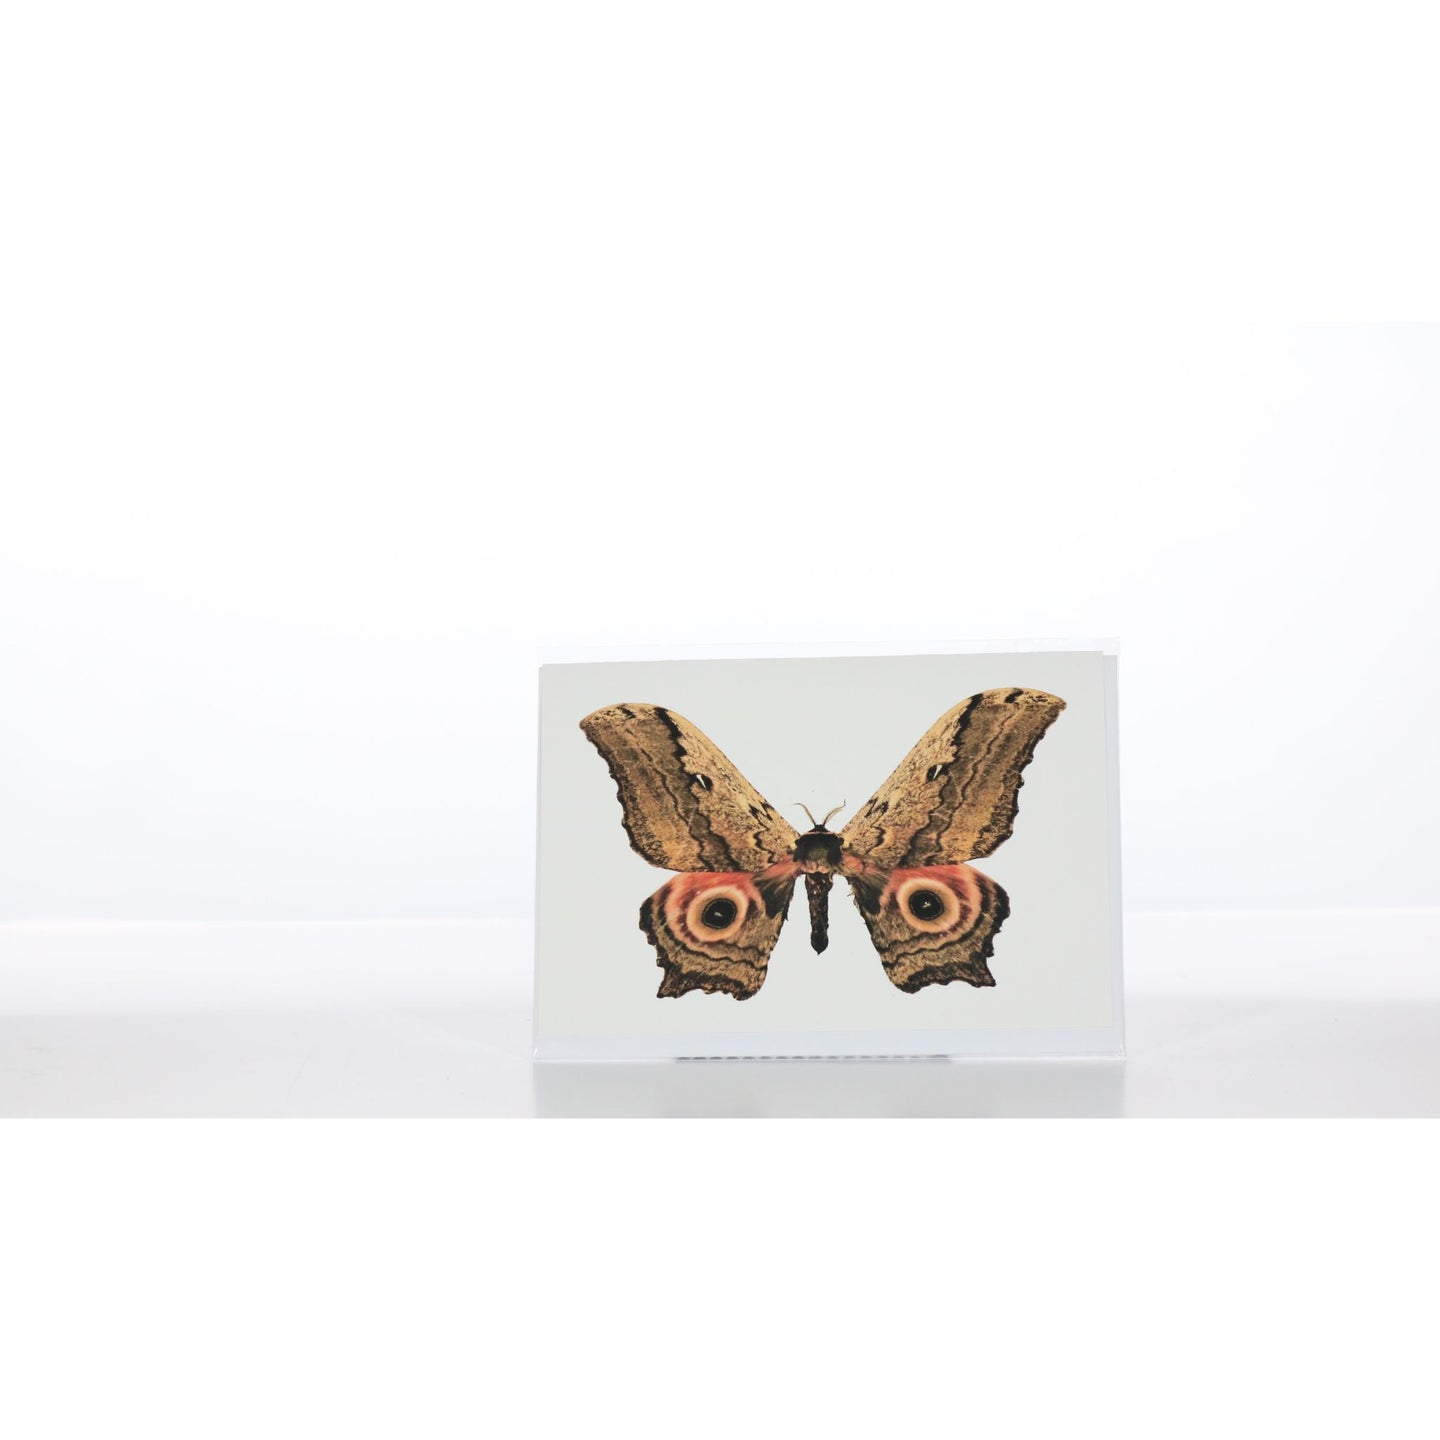 Greeting Card GC14 - Insecta Etcetera